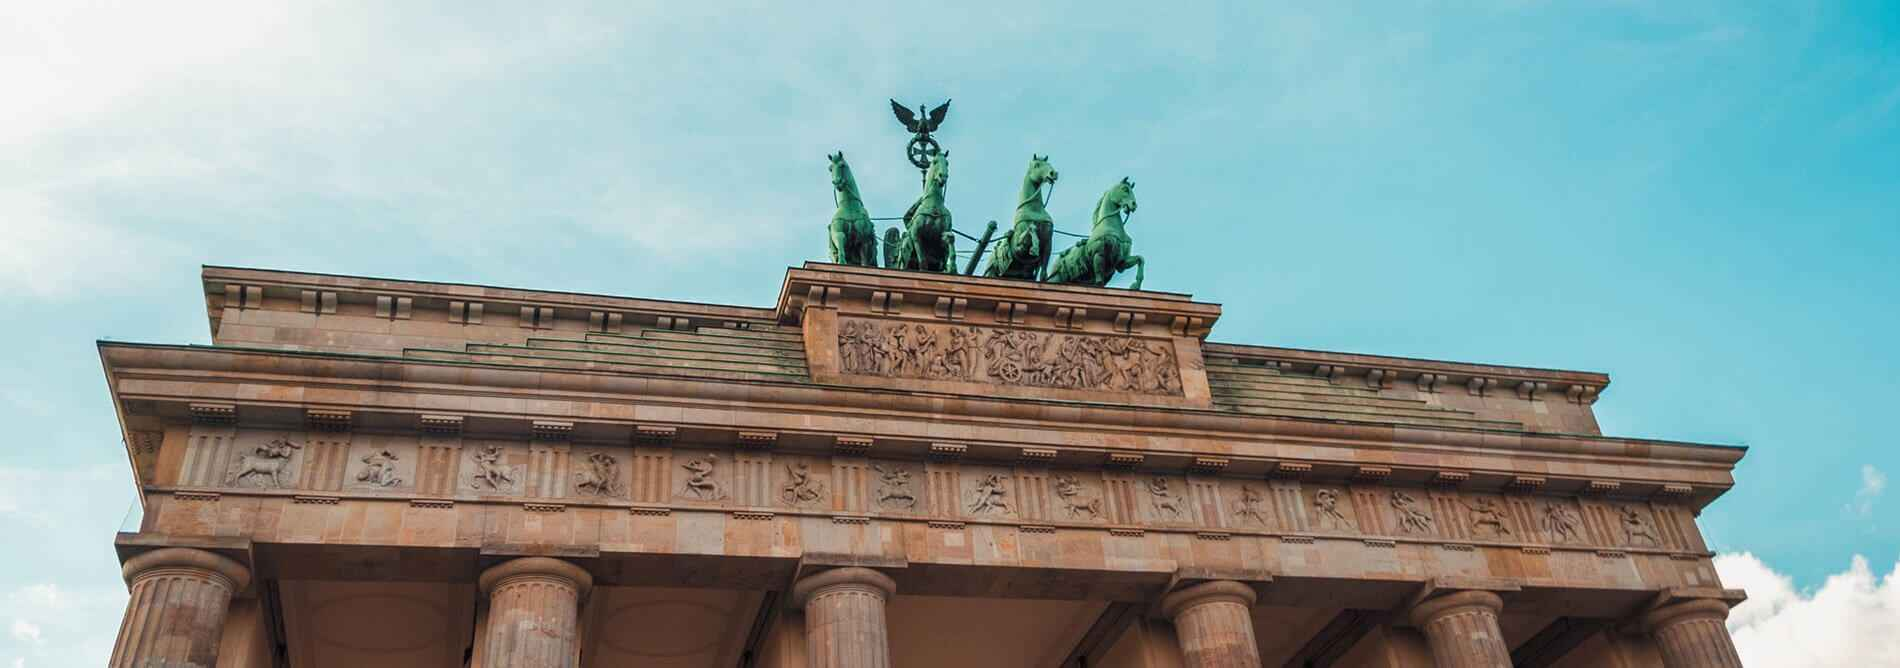 berlin-free-walking-tour